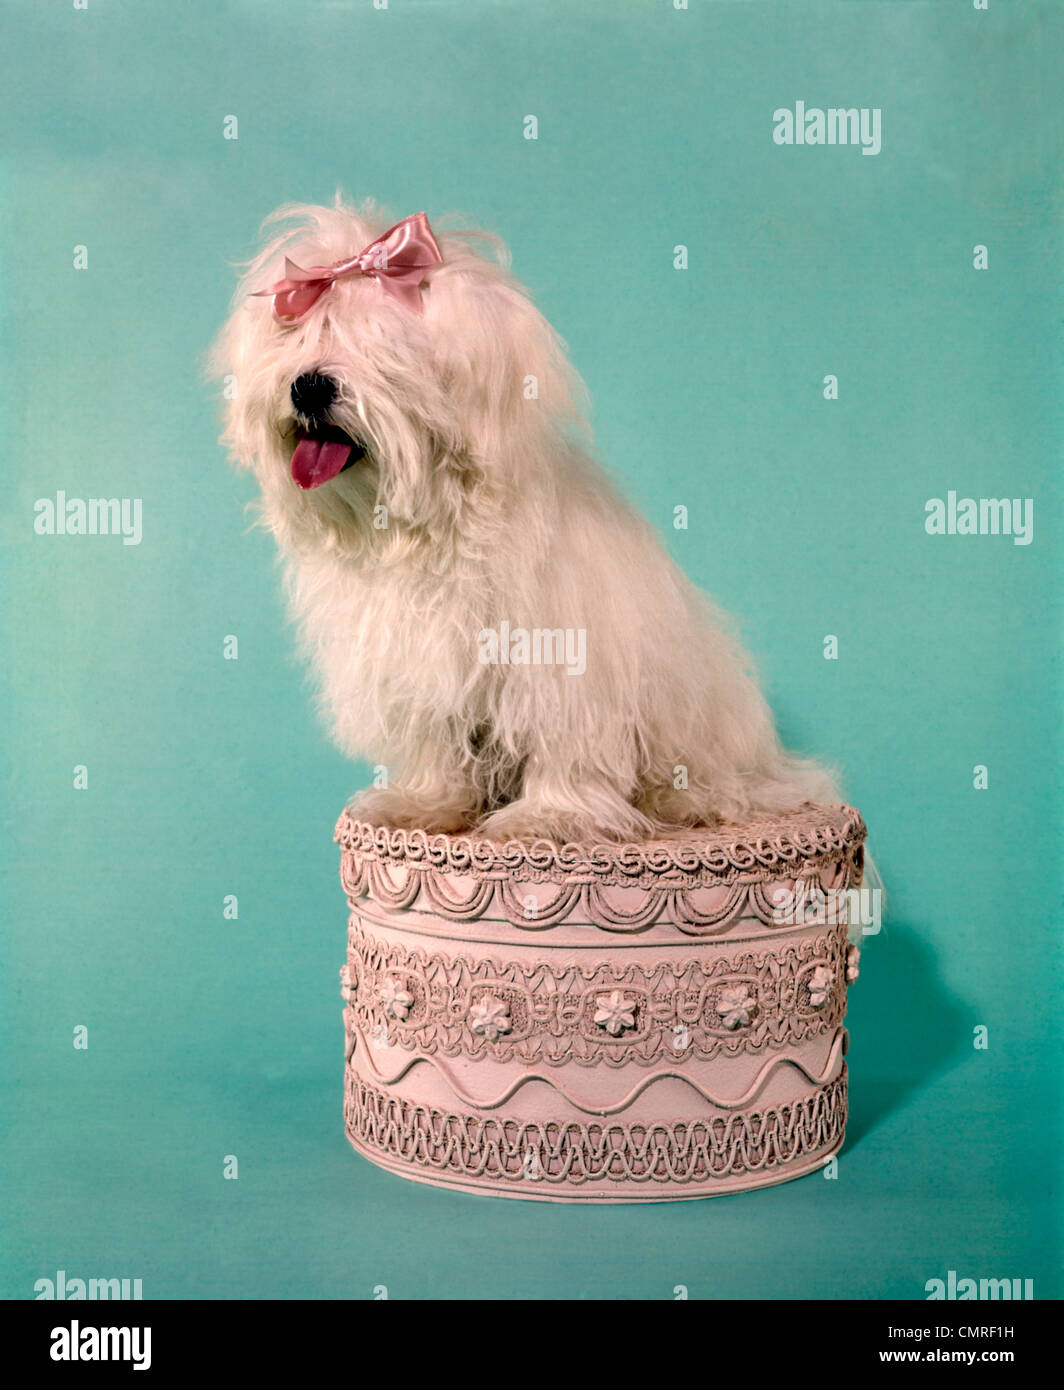 1970s WHITE SHAGGY DOG PINK BOW & PINK TONGUE SITTING ON AN  OTTOMAN STOOL DECORATED WITH LACE RICKRACK - Stock Image